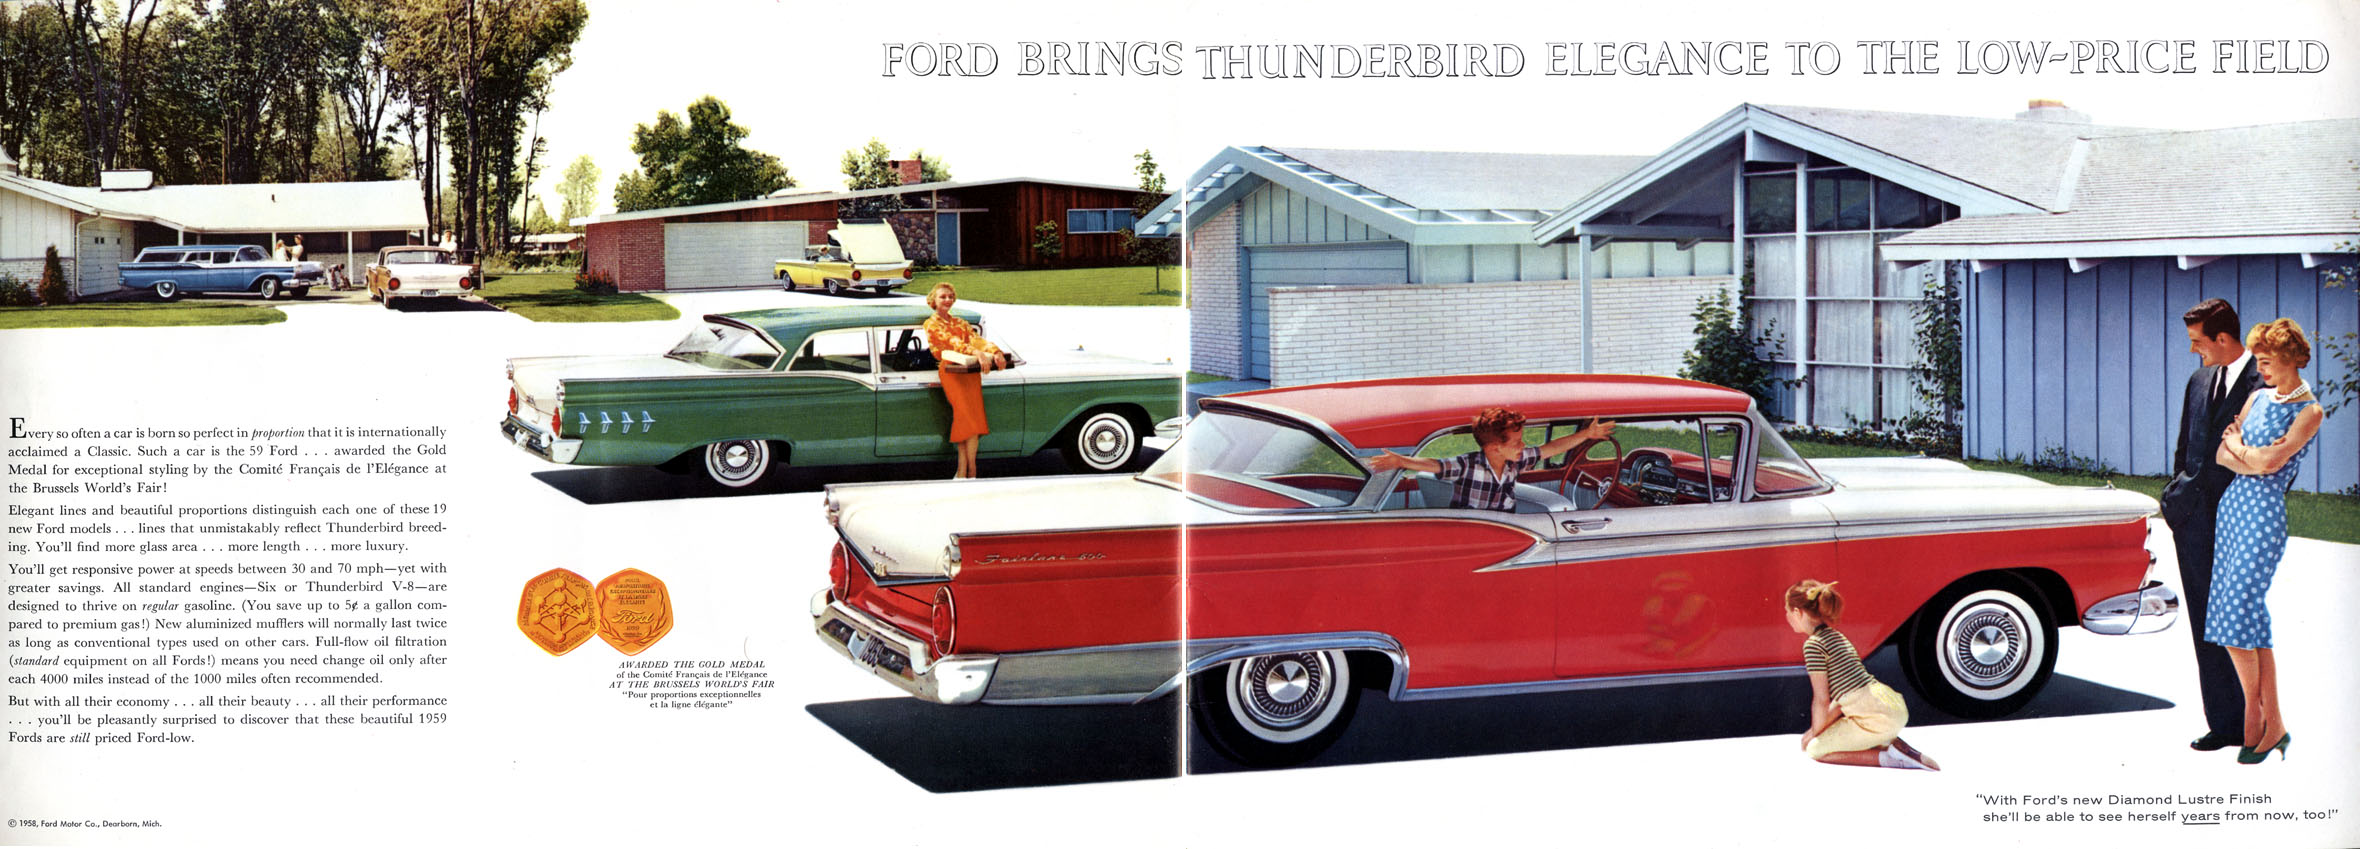 1959 ford 02